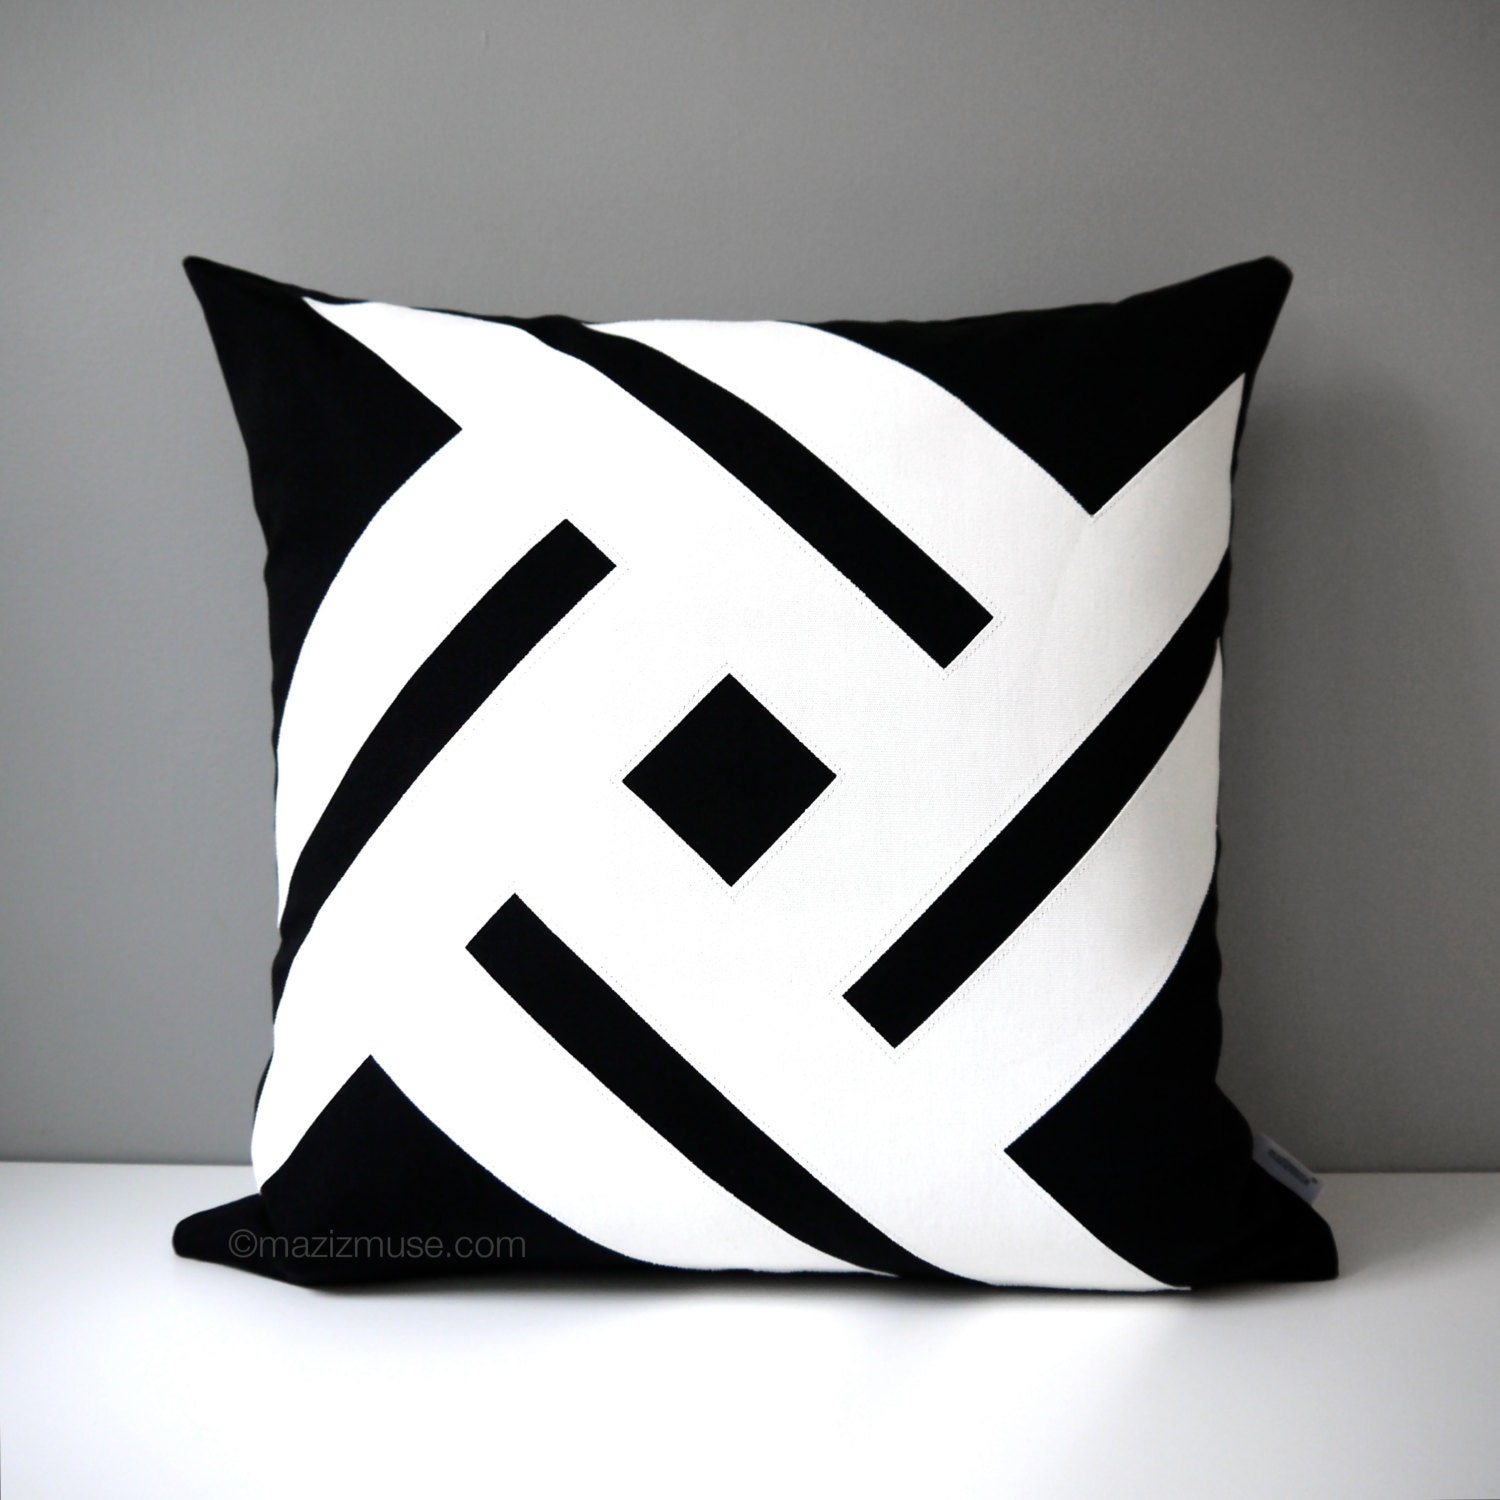 Modern White Pillow : Modern Black & White Outdoor Pillow Cover Decorative Pillow